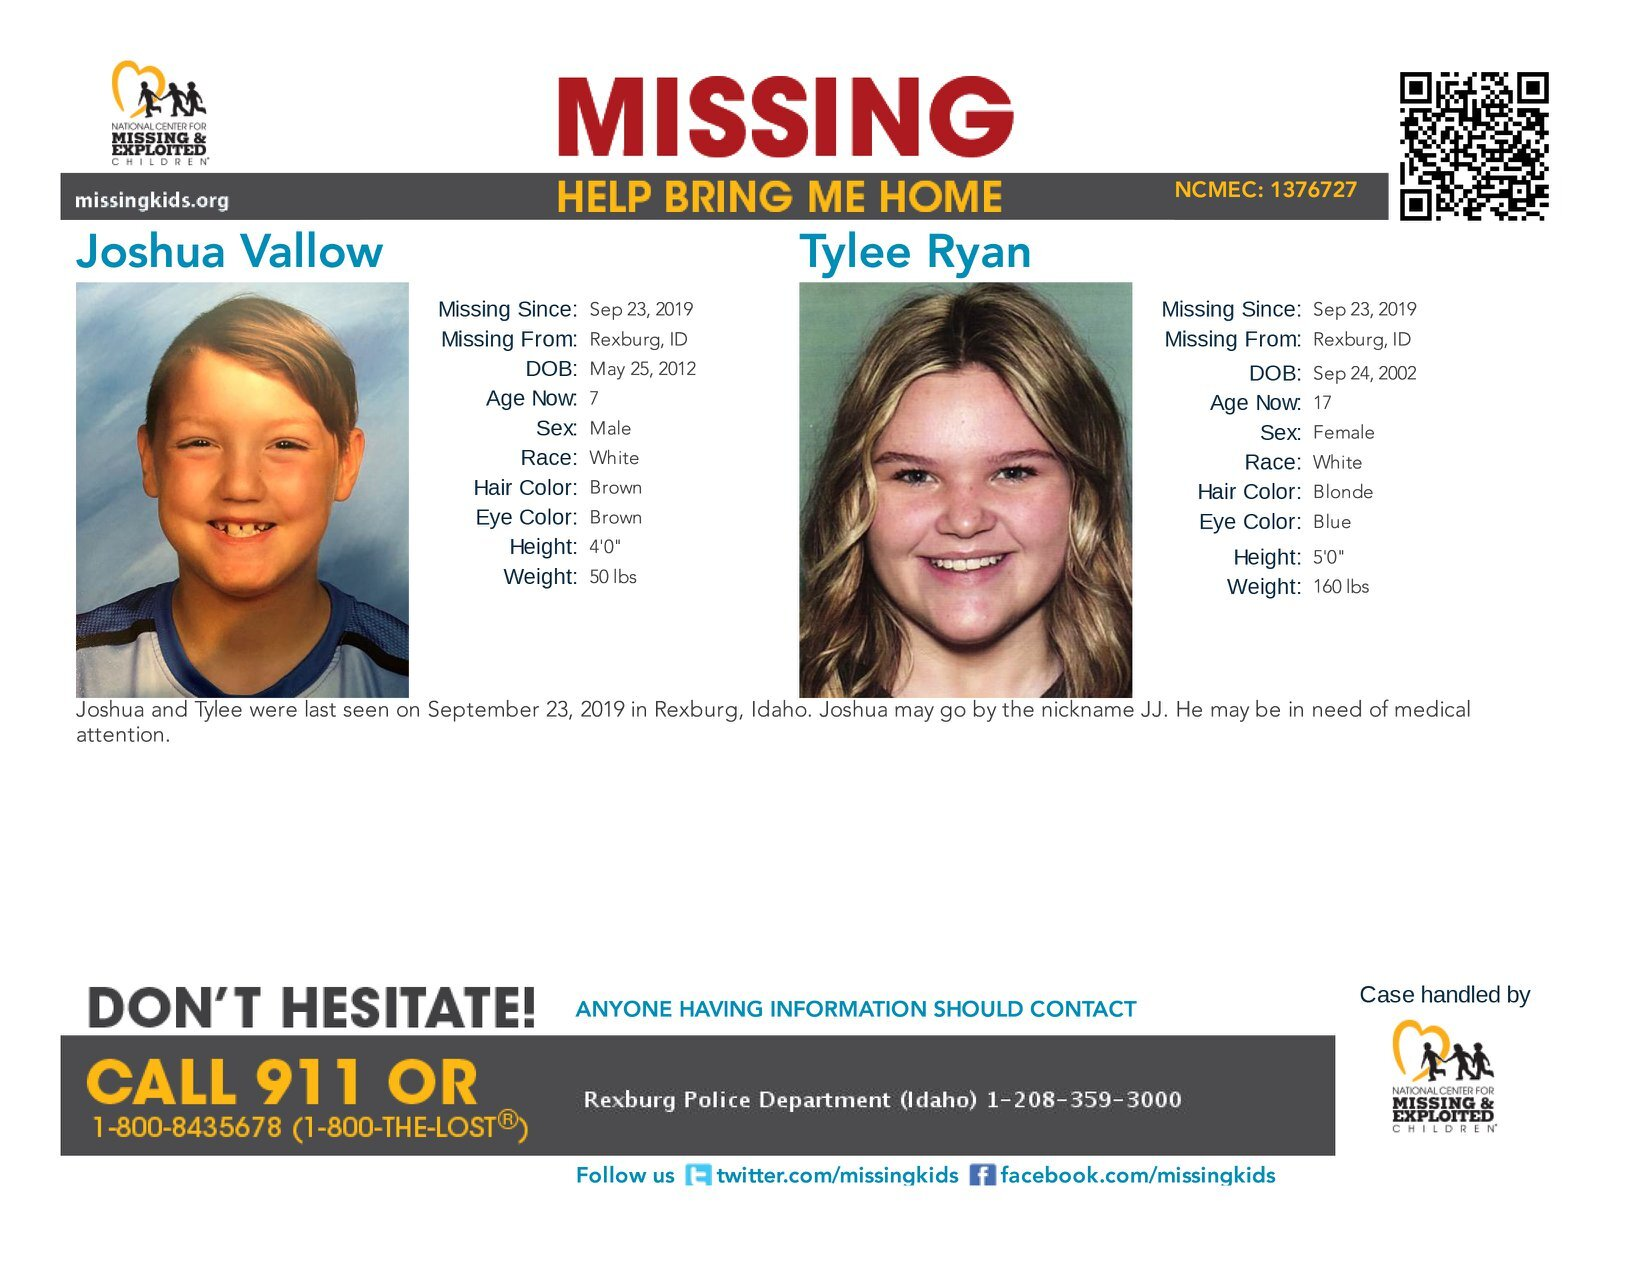 Photos: Police seeking couple for questioning in Rexburg children's disappearance and deaths of formerspouses